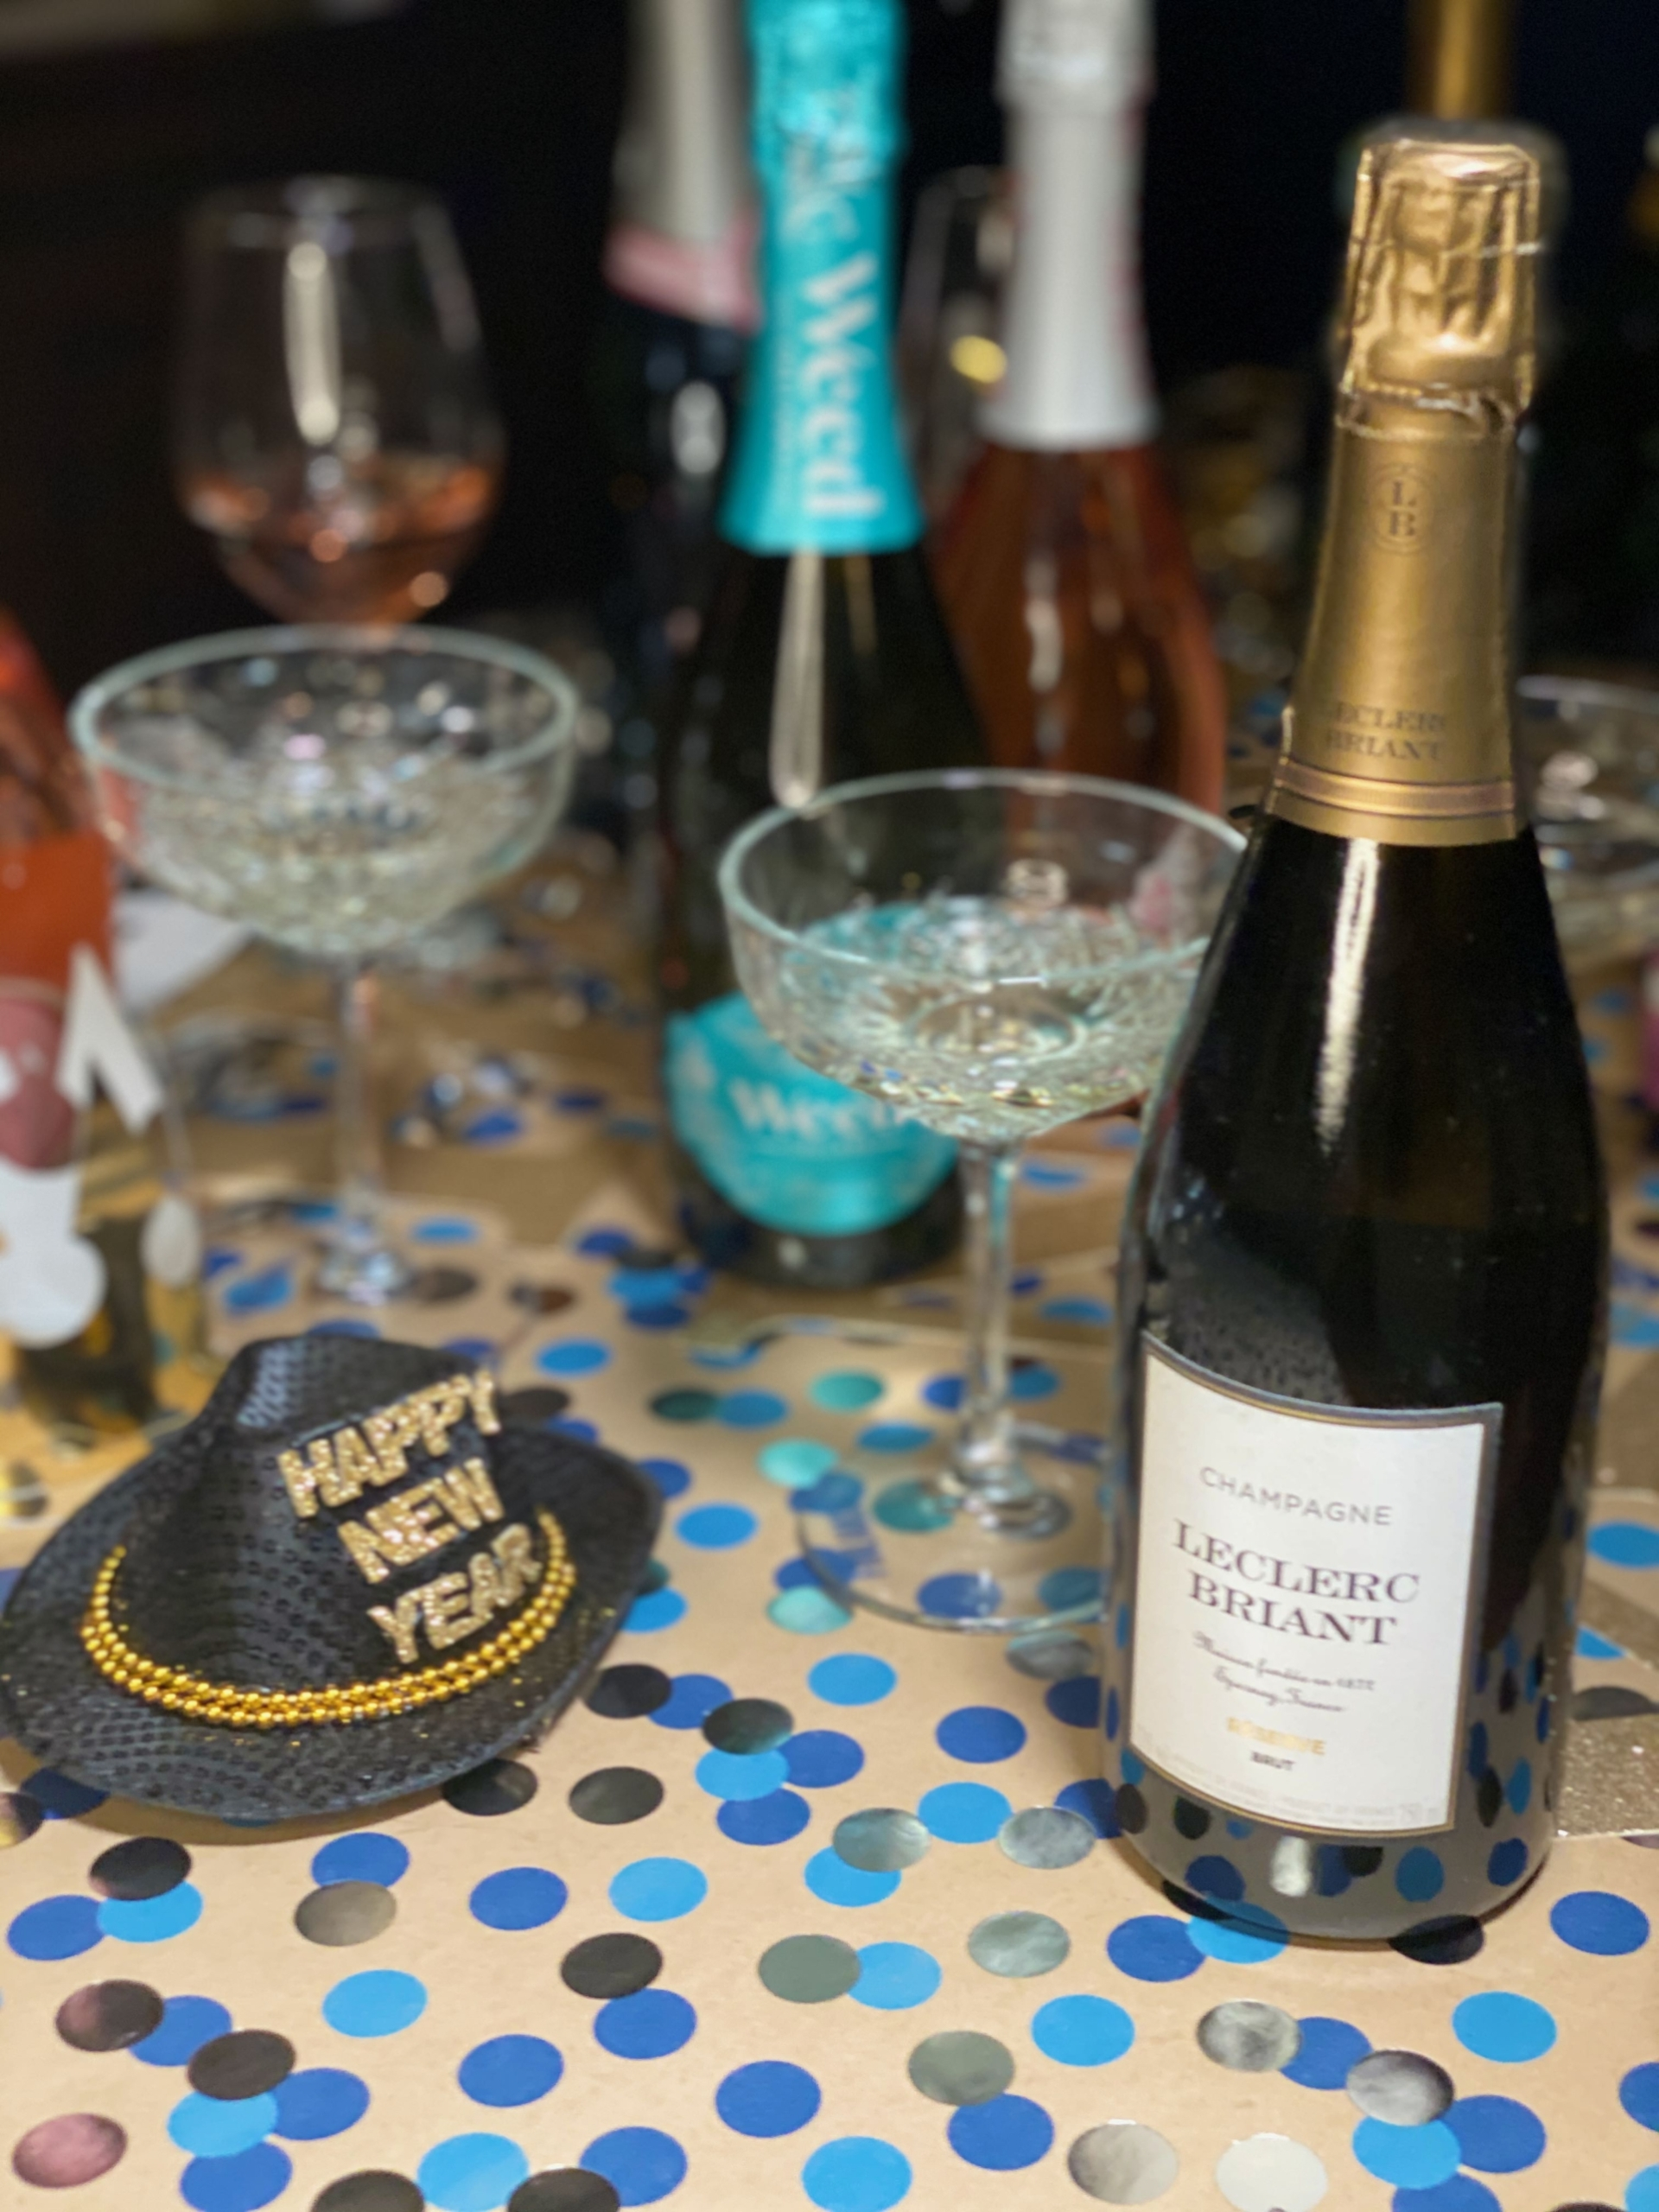 Leclerc Briant Brut Reserve Is the Best Bubbly For NYE